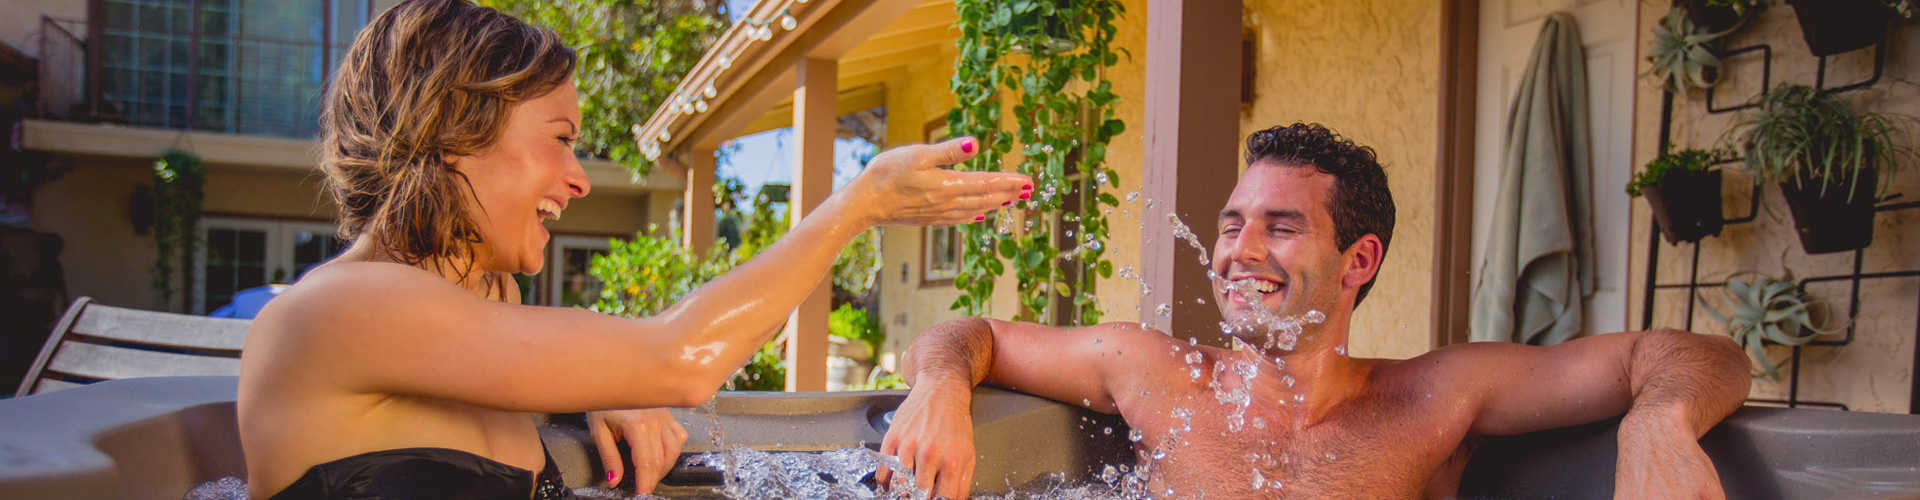 Spa Country New 5 Star Reviews – Low Hot Tub Prices Steamboat Springs